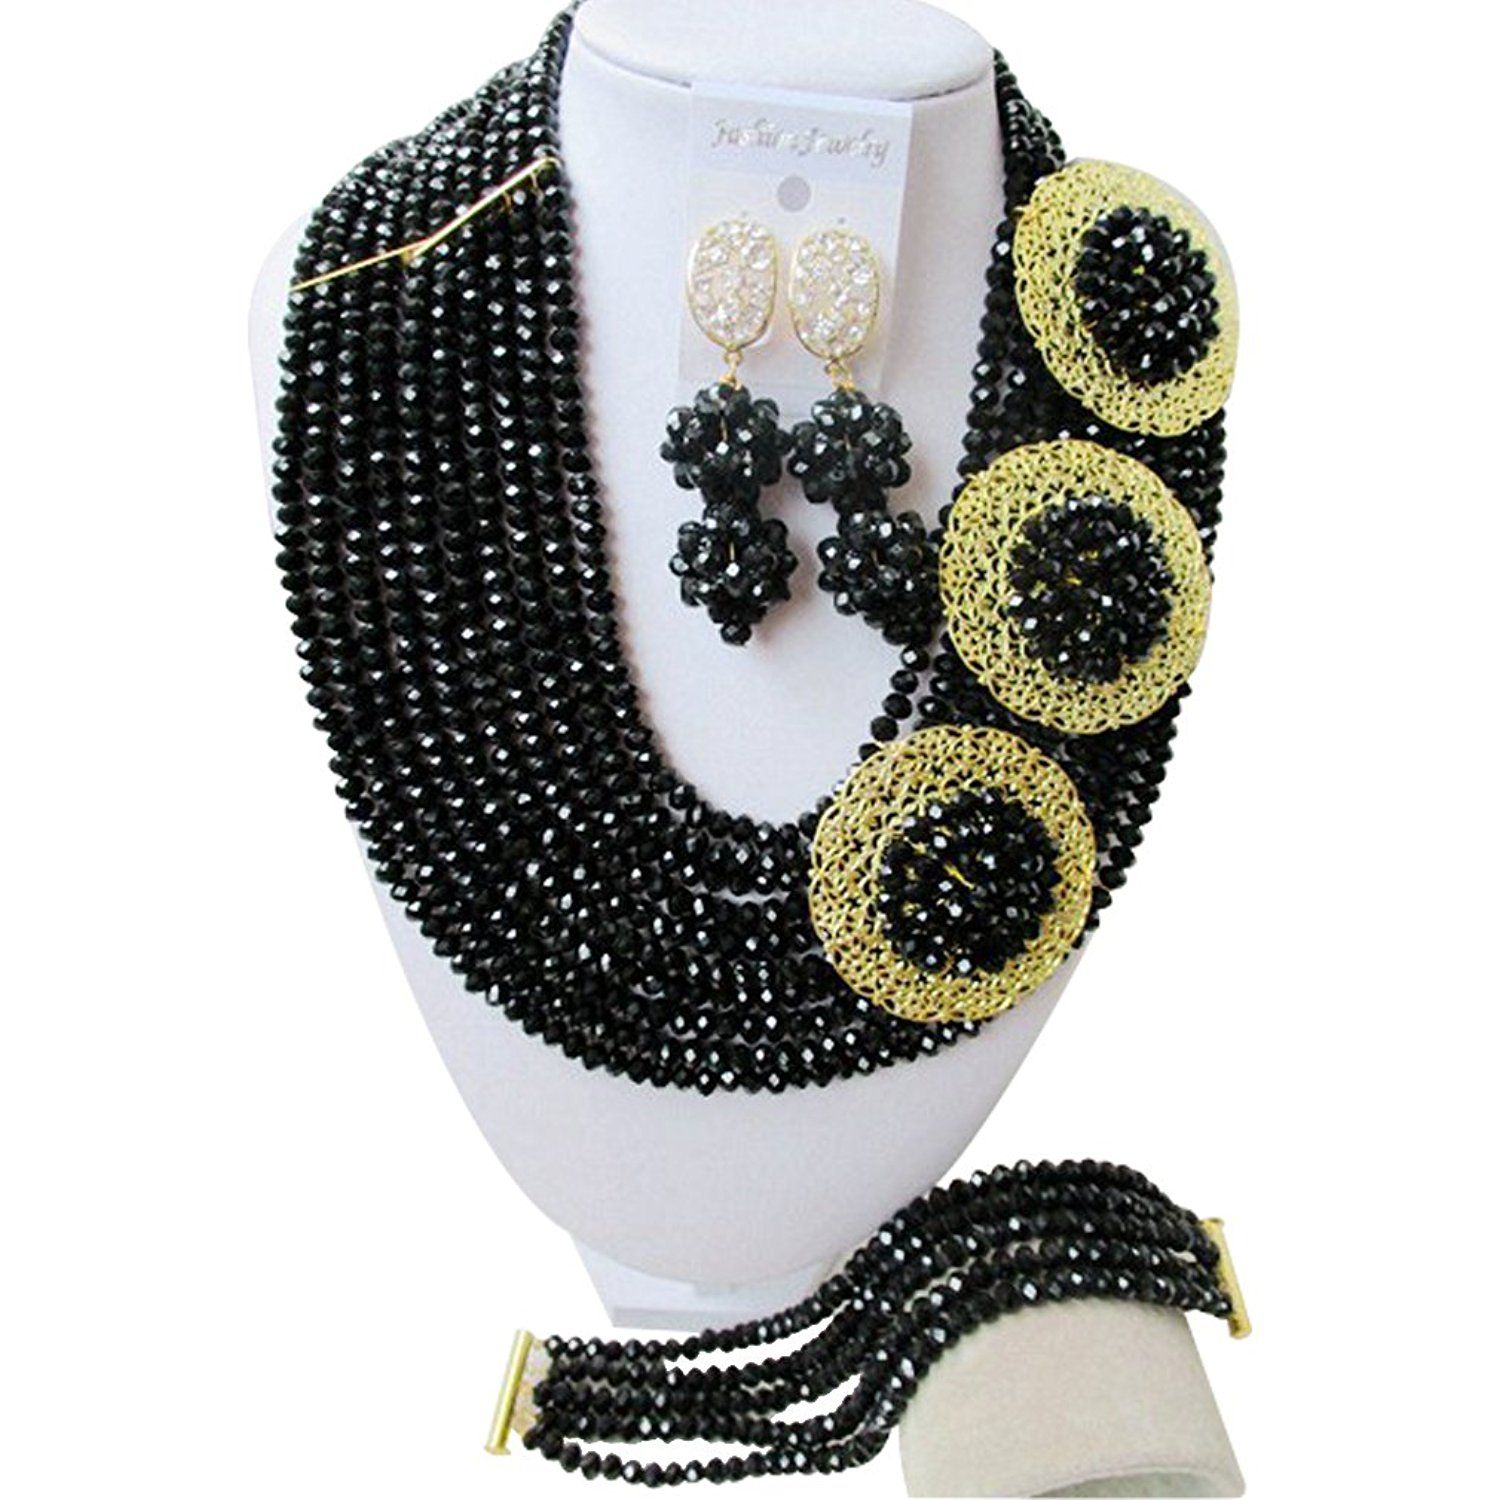 laanc 10 Rows Black 6mm African Beads Jewelry Set,Nigerian Wedding Beads Jewellery Sets A-023A